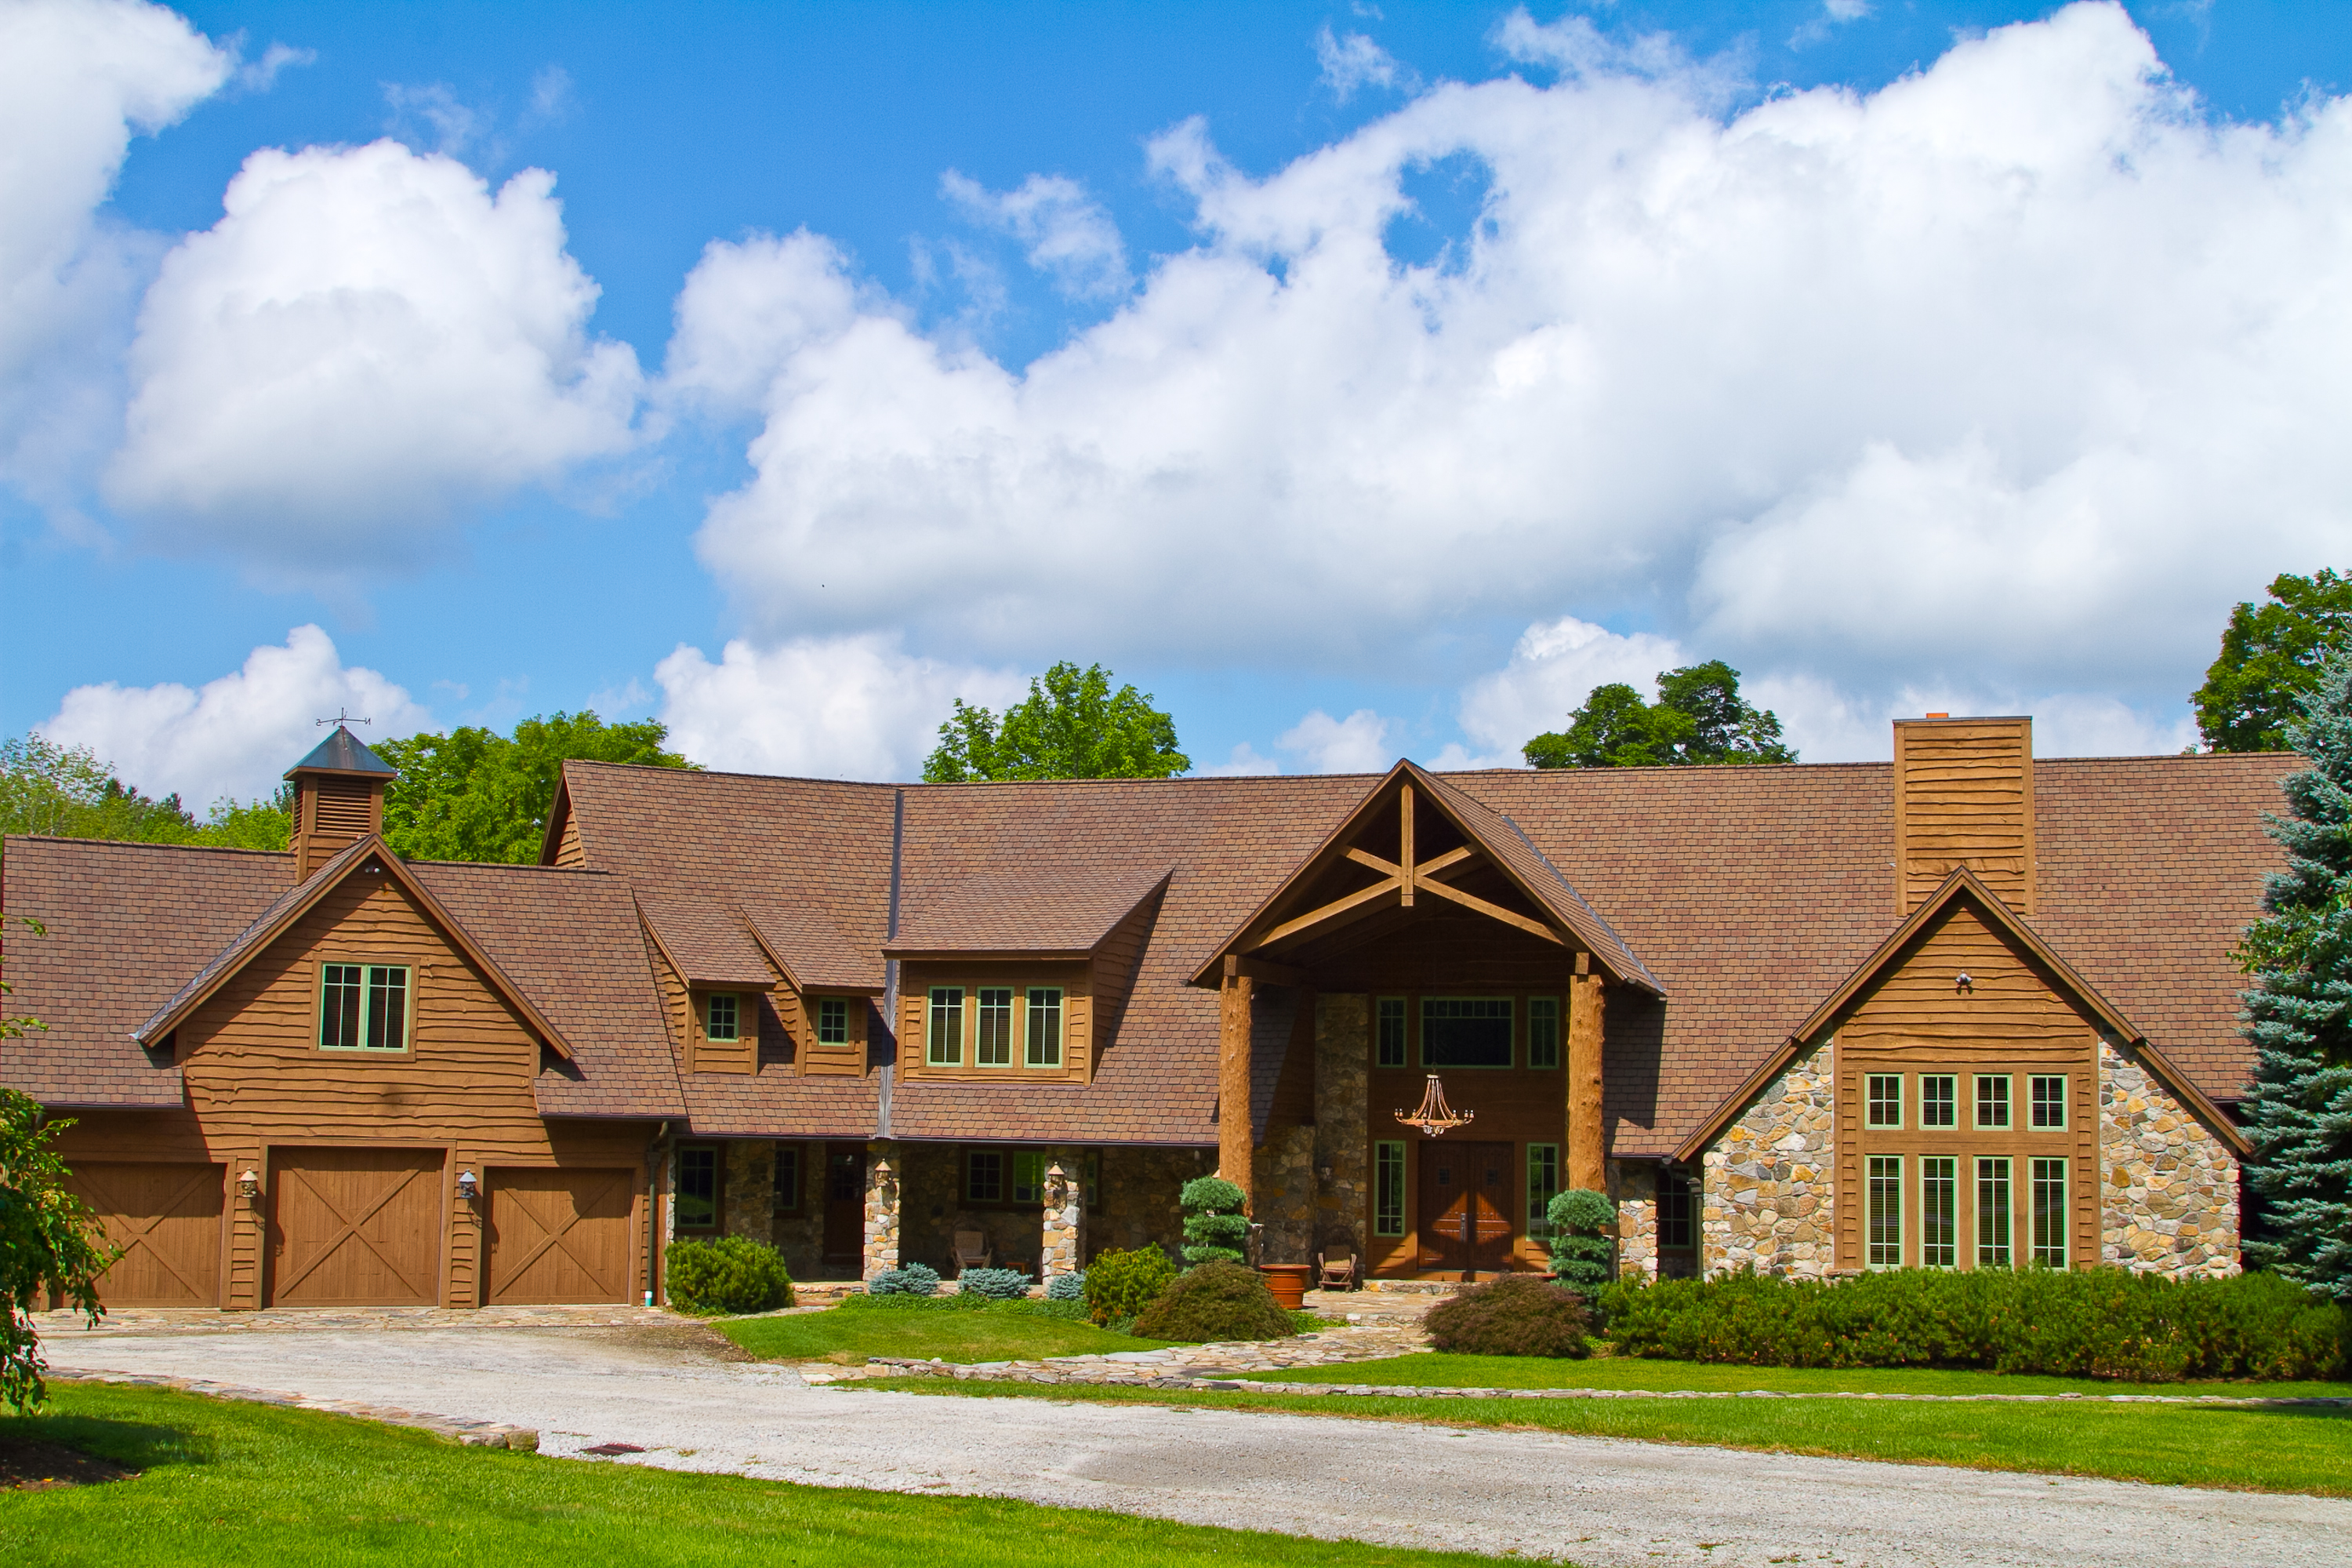 Property For Sale at Upscale Unique Country Lodge on almost 70 Acres